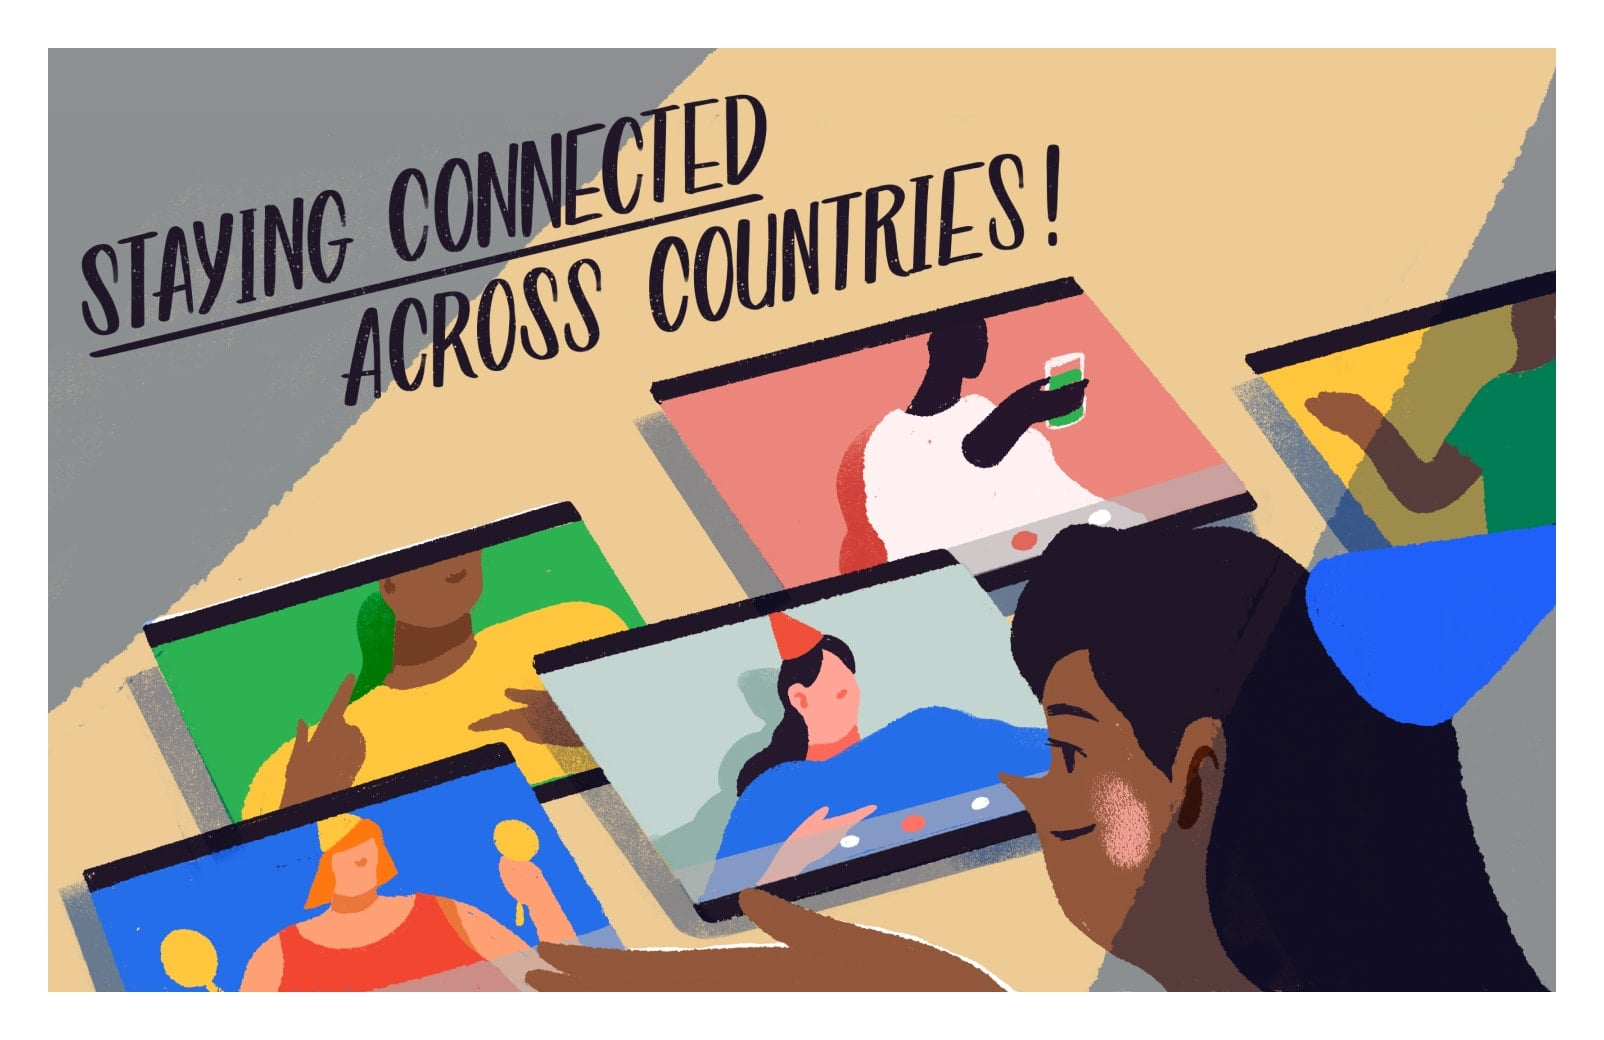 Staying connected across countries